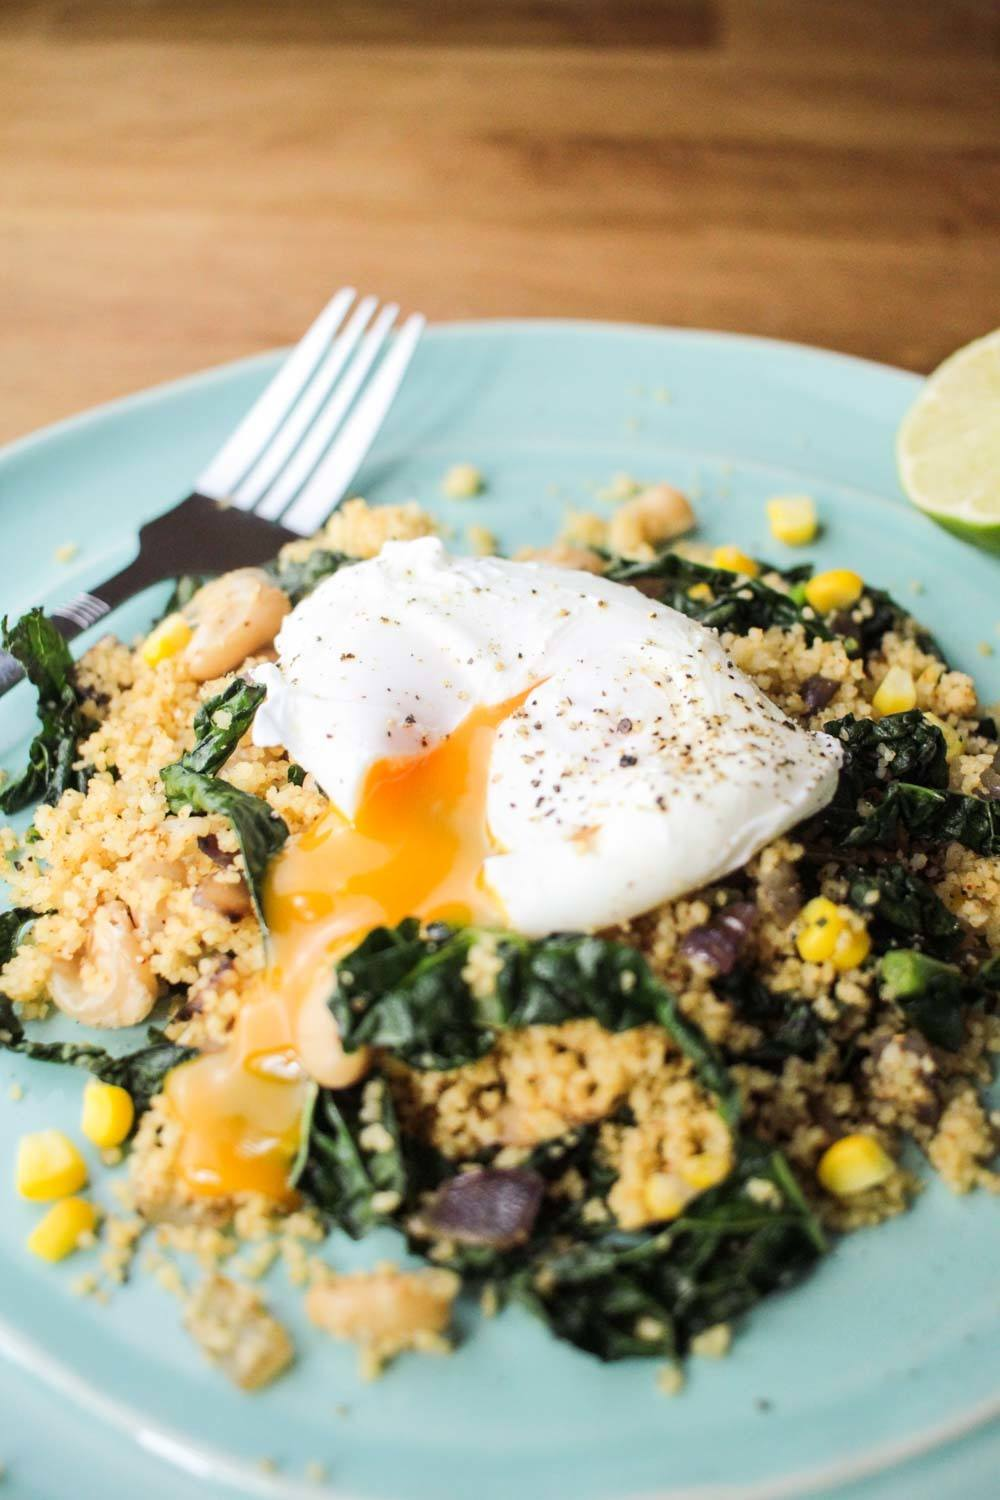 Fragrant Couscous Salad with a Runny Poached Egg Recipe | HeyFood — heyfoodapp.com